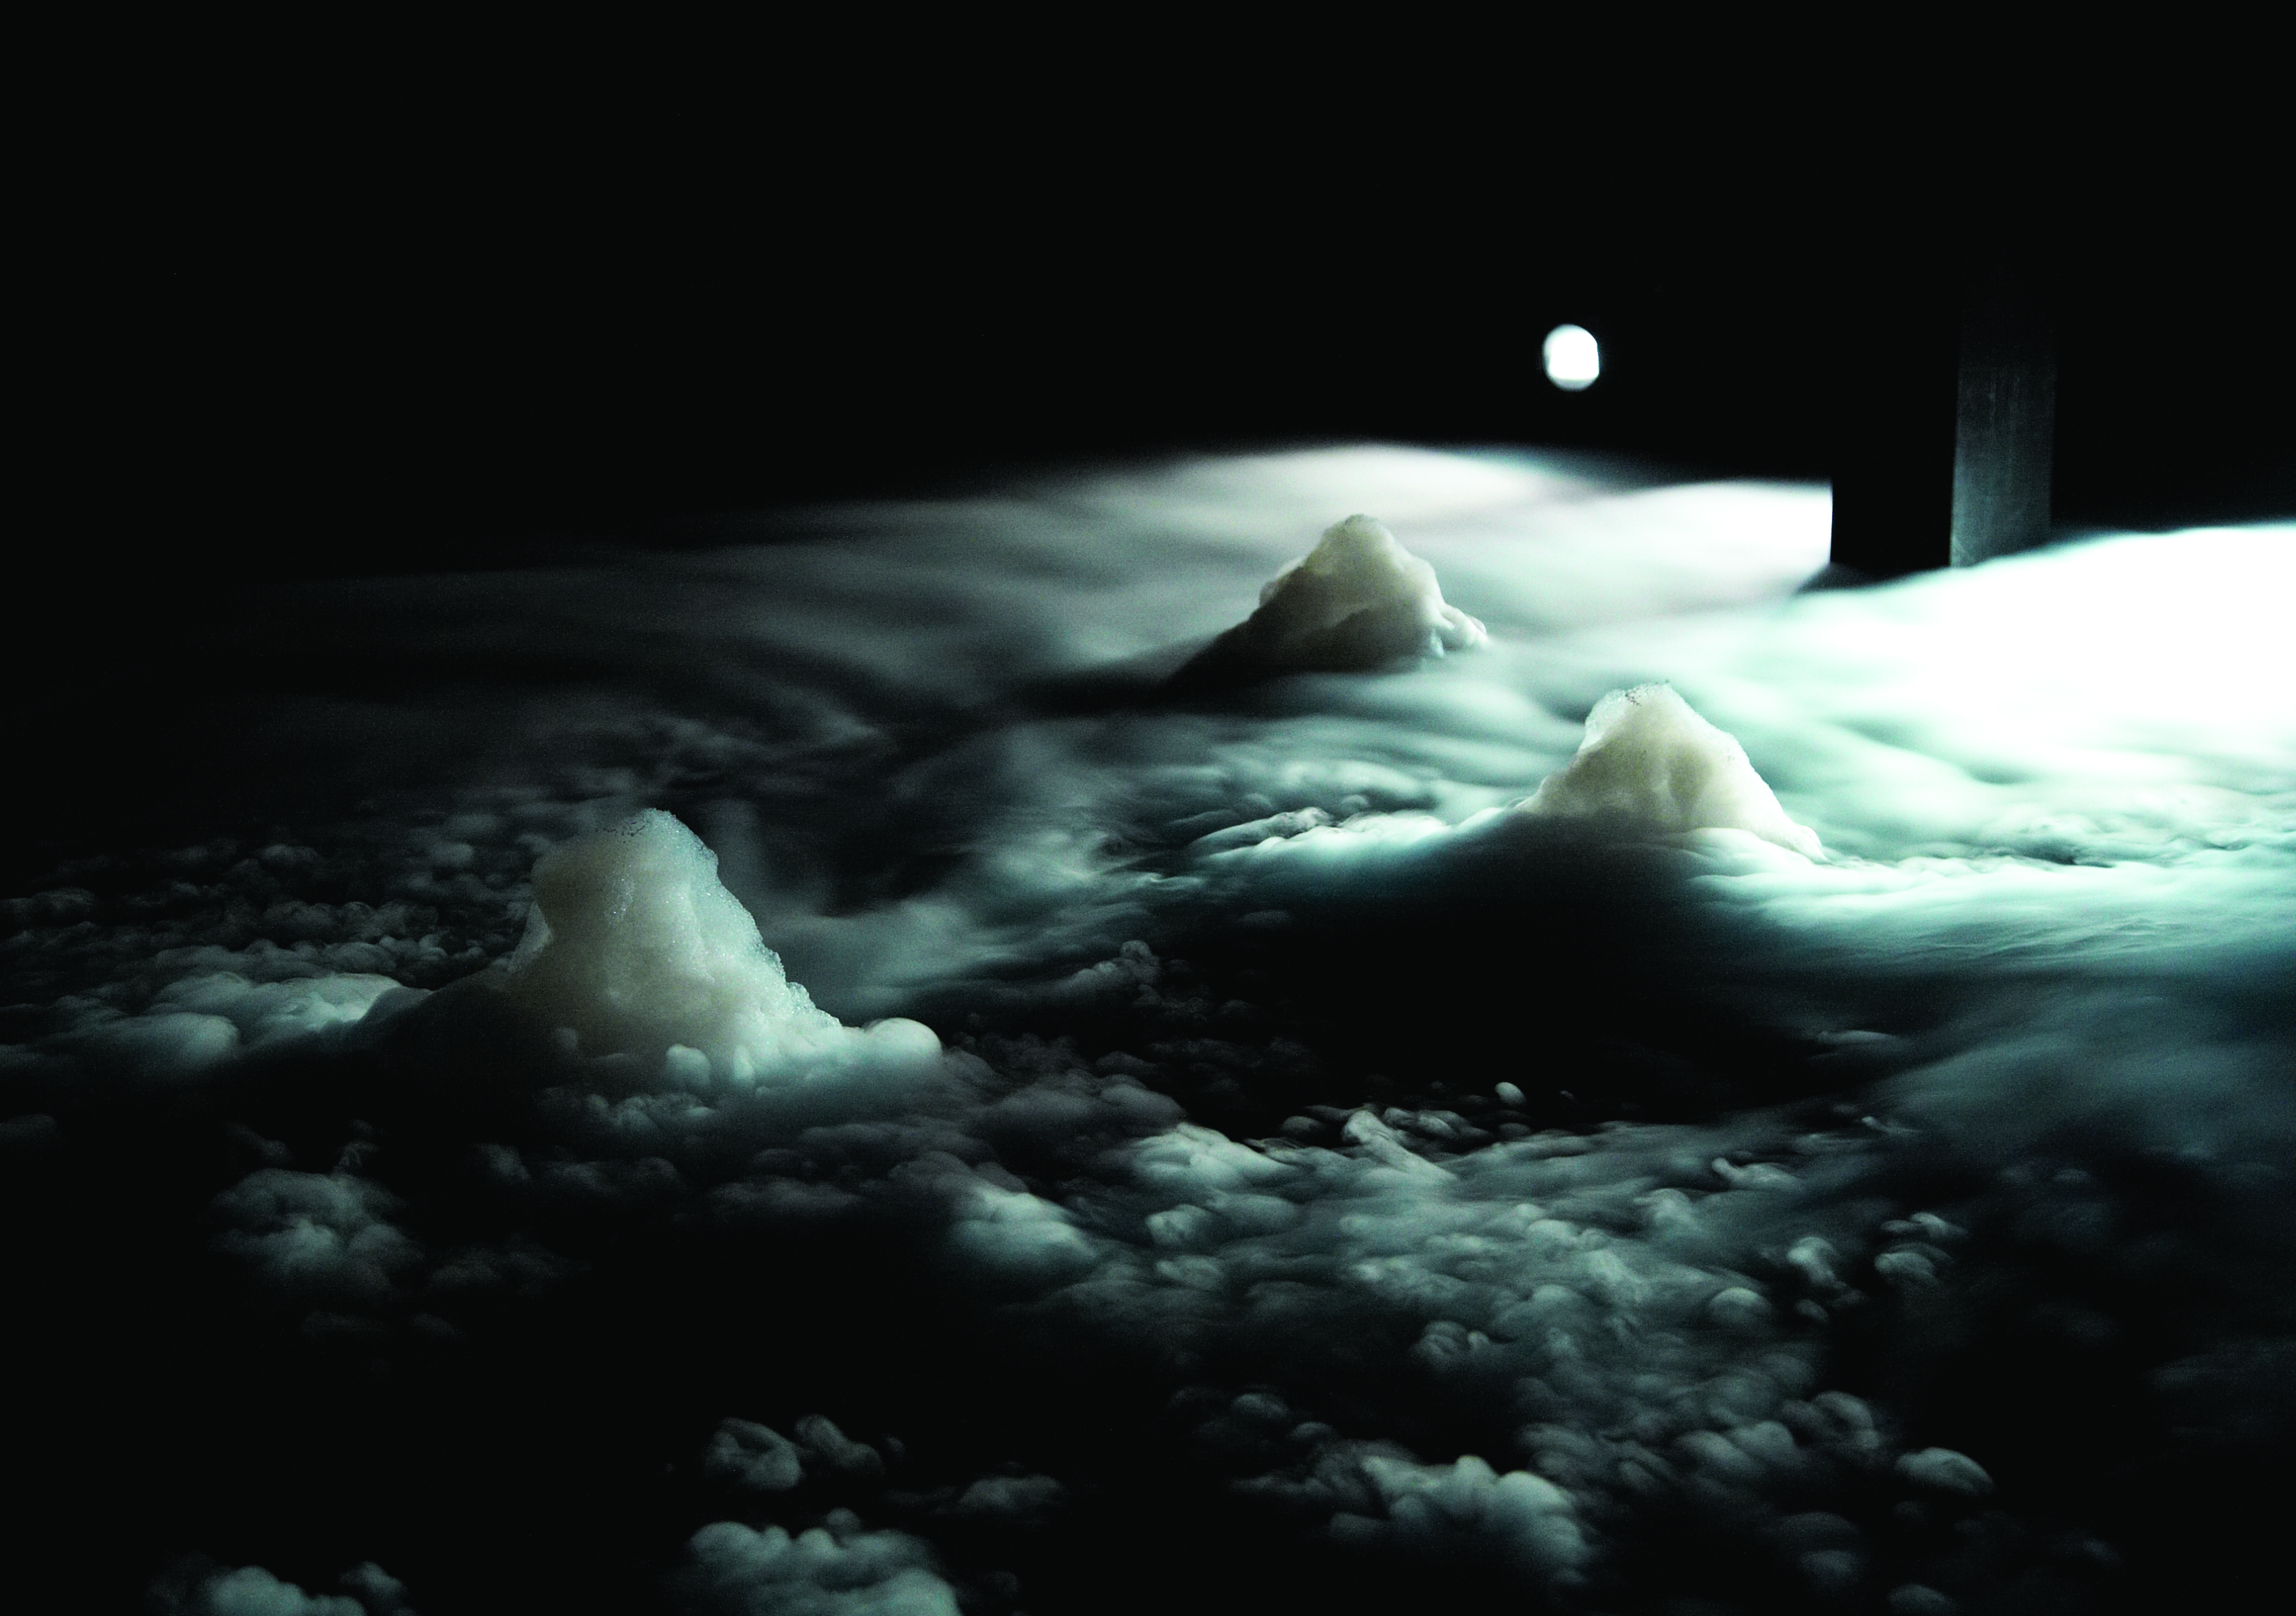 image of cloudy backlit landscape at night, from Mette ingvartsen's Evaporated Landscapes project.